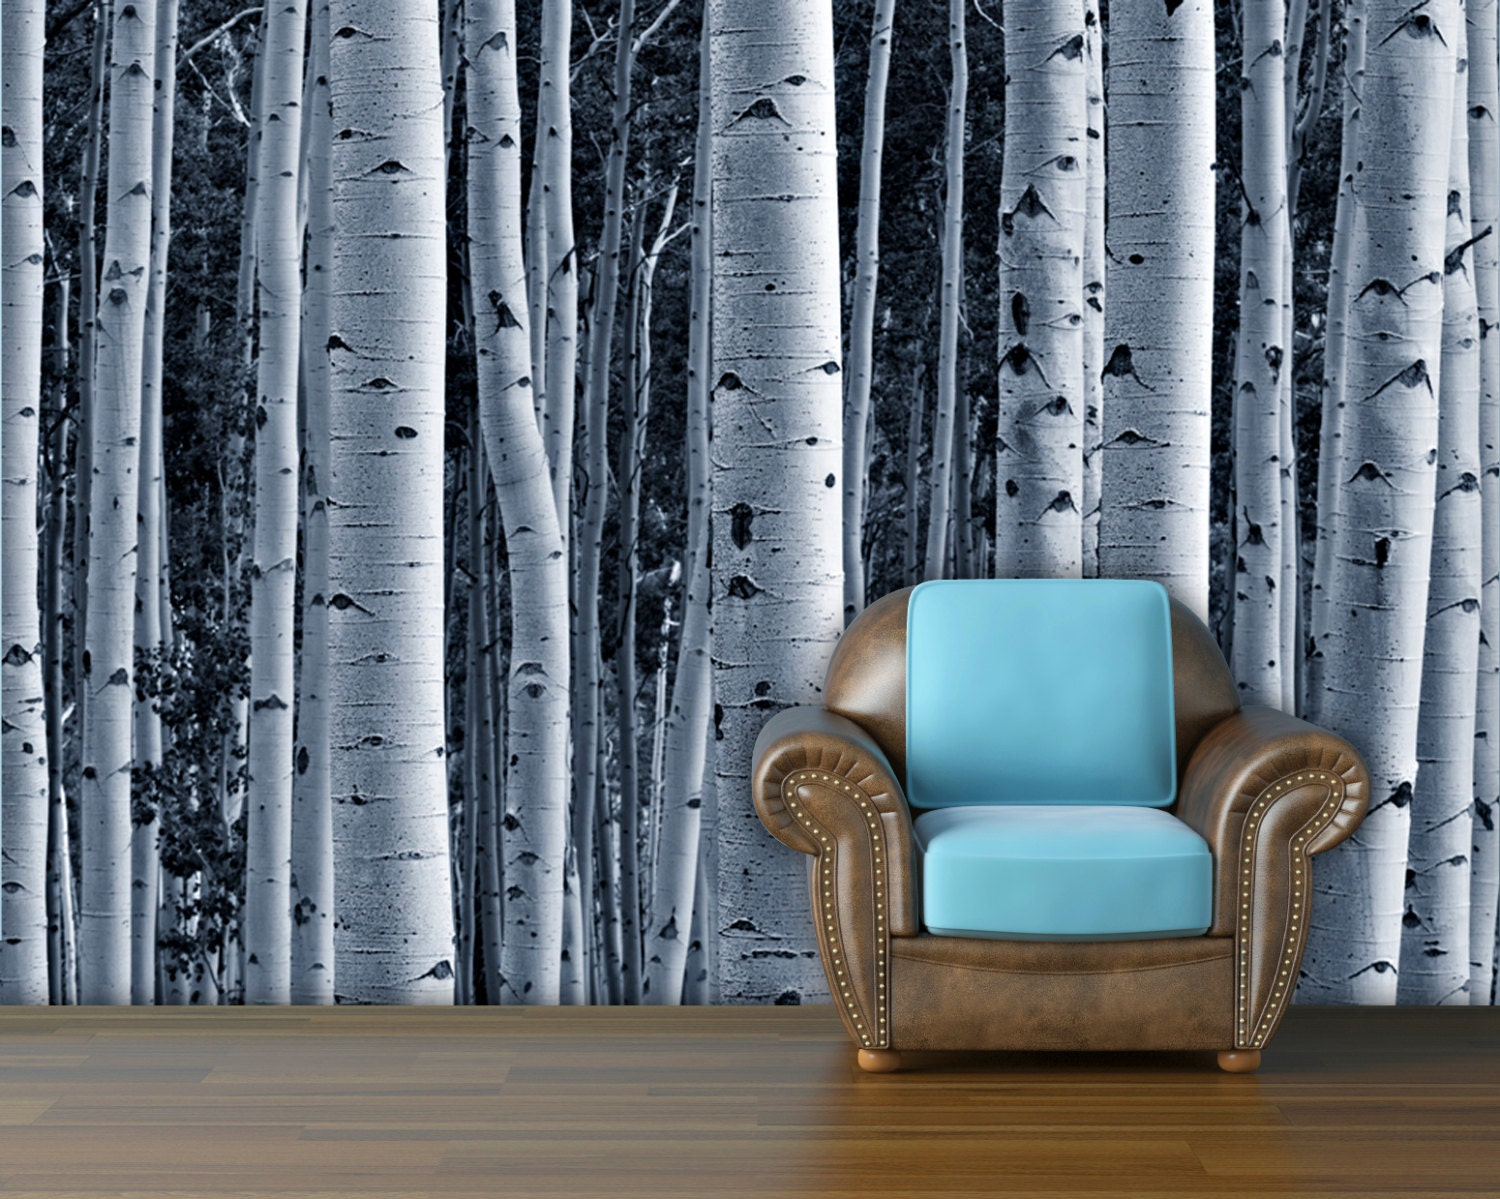 Aspen forest trees mural wallpaper repositionable peel for Aspen wall mural